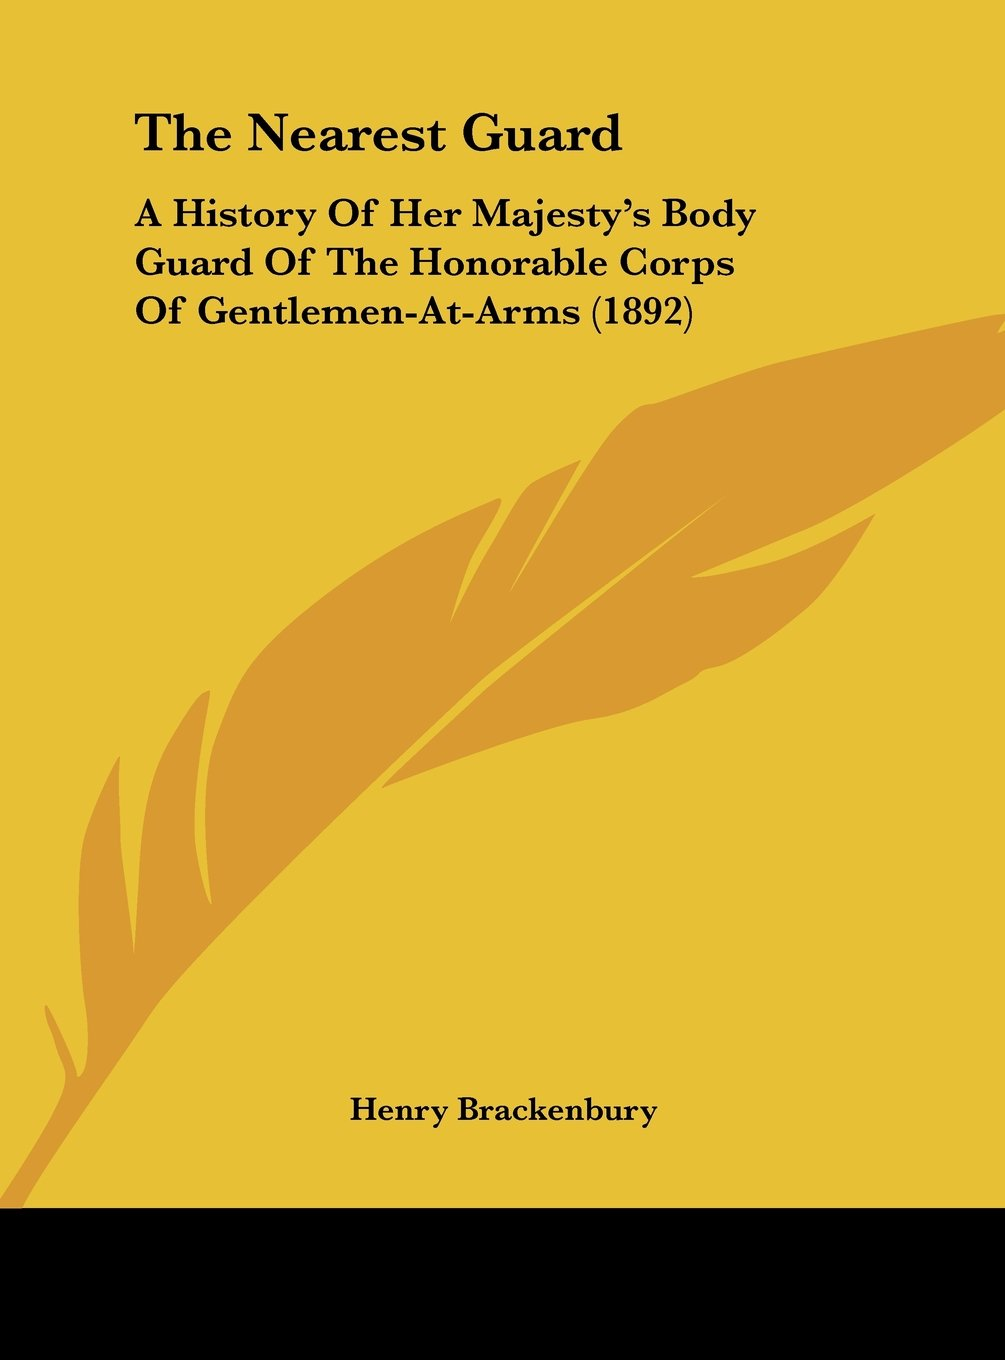 The Nearest Guard: A History Of Her Majesty's Body Guard Of The Honorable Corps Of Gentlemen-At-Arms (1892) ebook